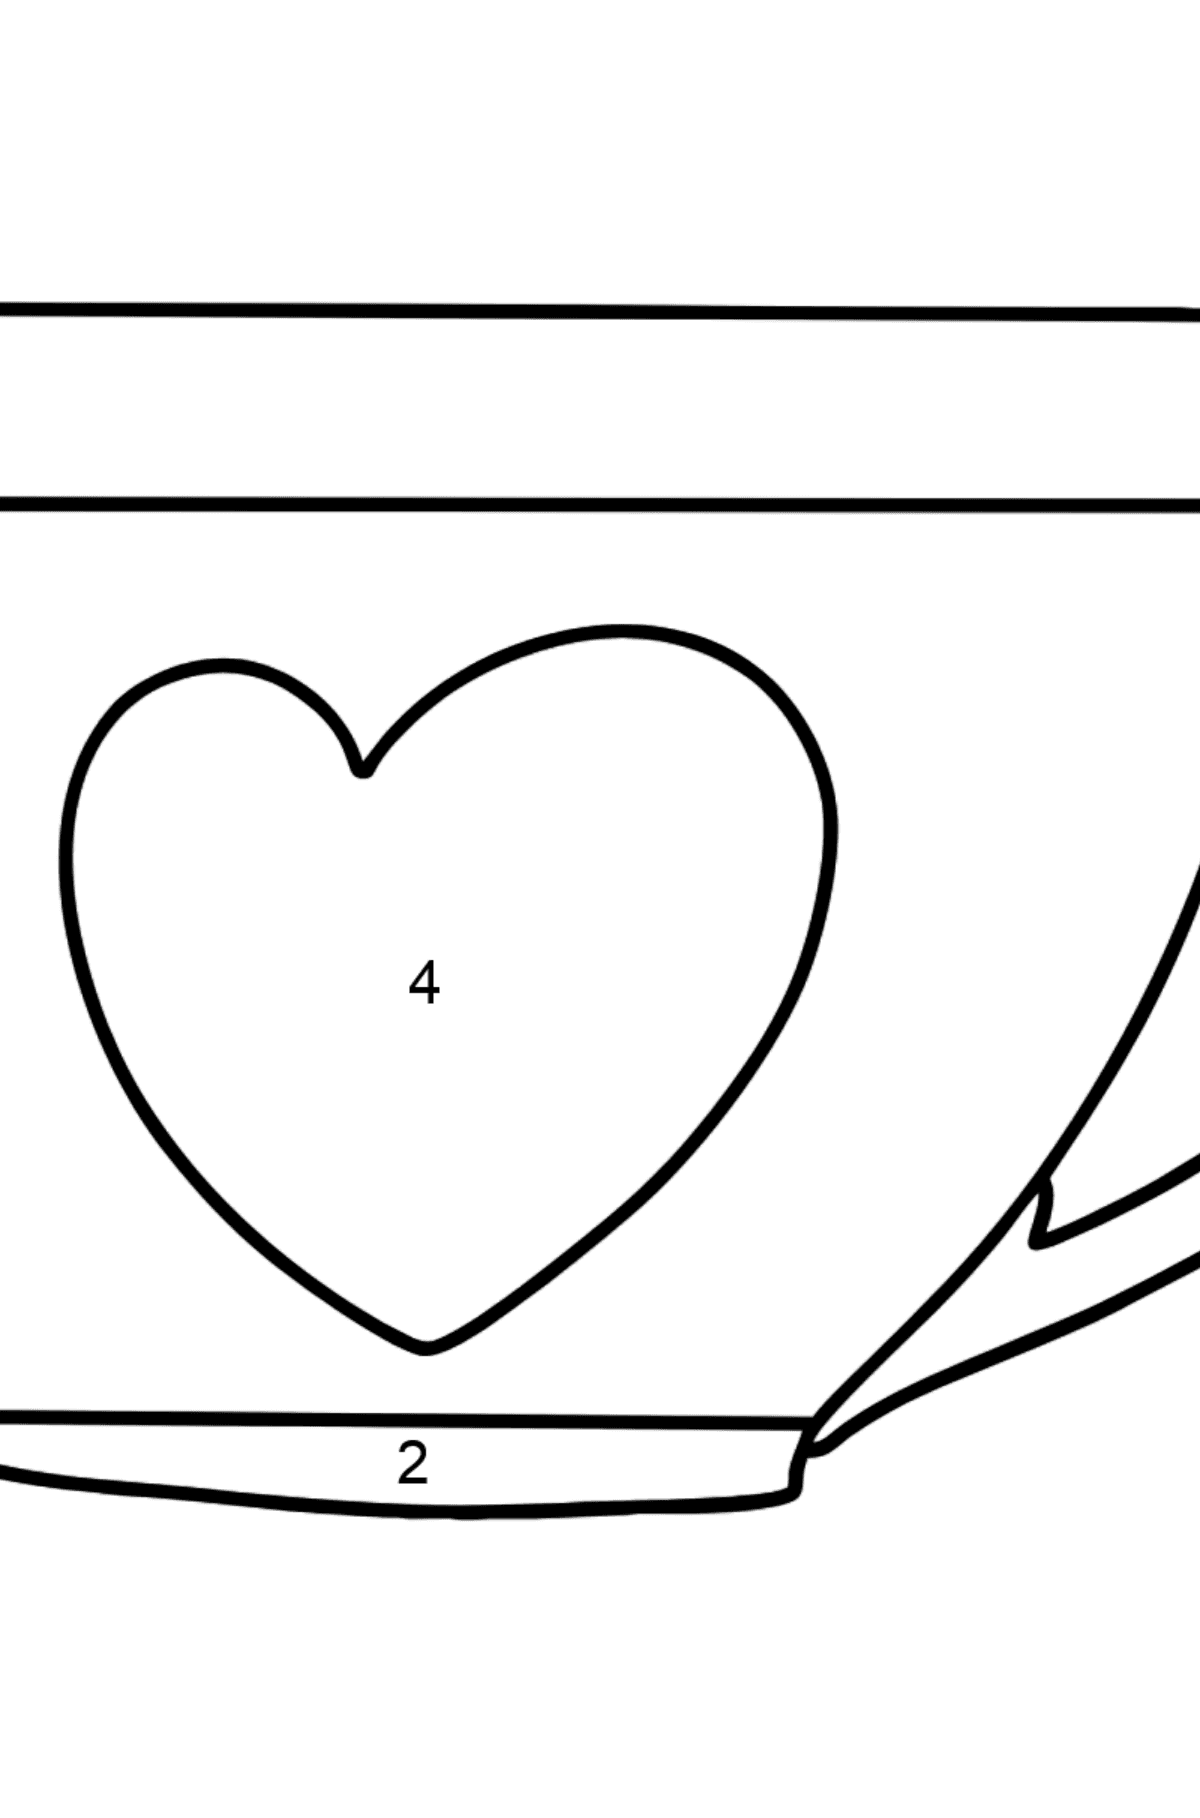 Cup coloring page - Coloring by Numbers for Kids